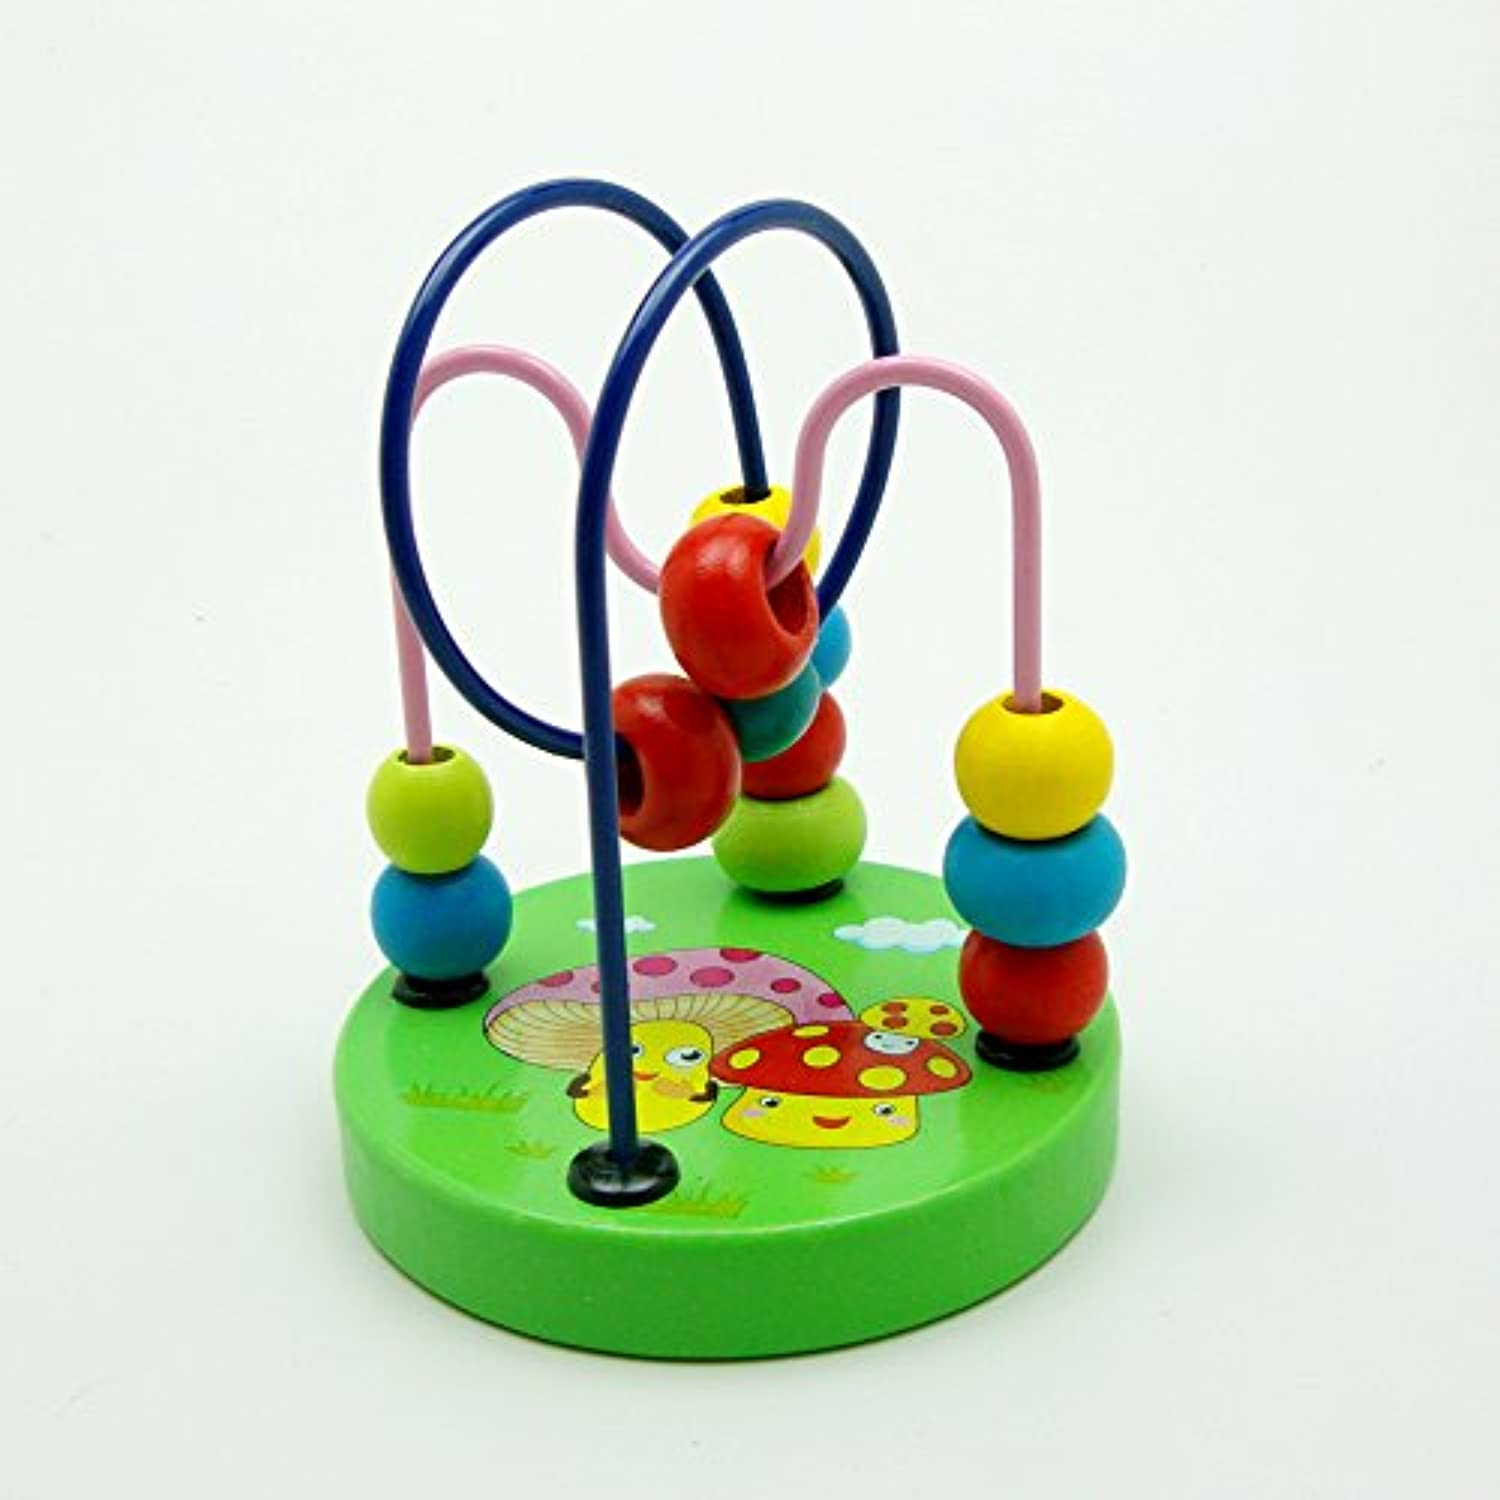 Colourful Baby Kids Children Wooden Toy Mini Around Beads Wire Maze Roller Coaster Educational Game, Mushroom pattern